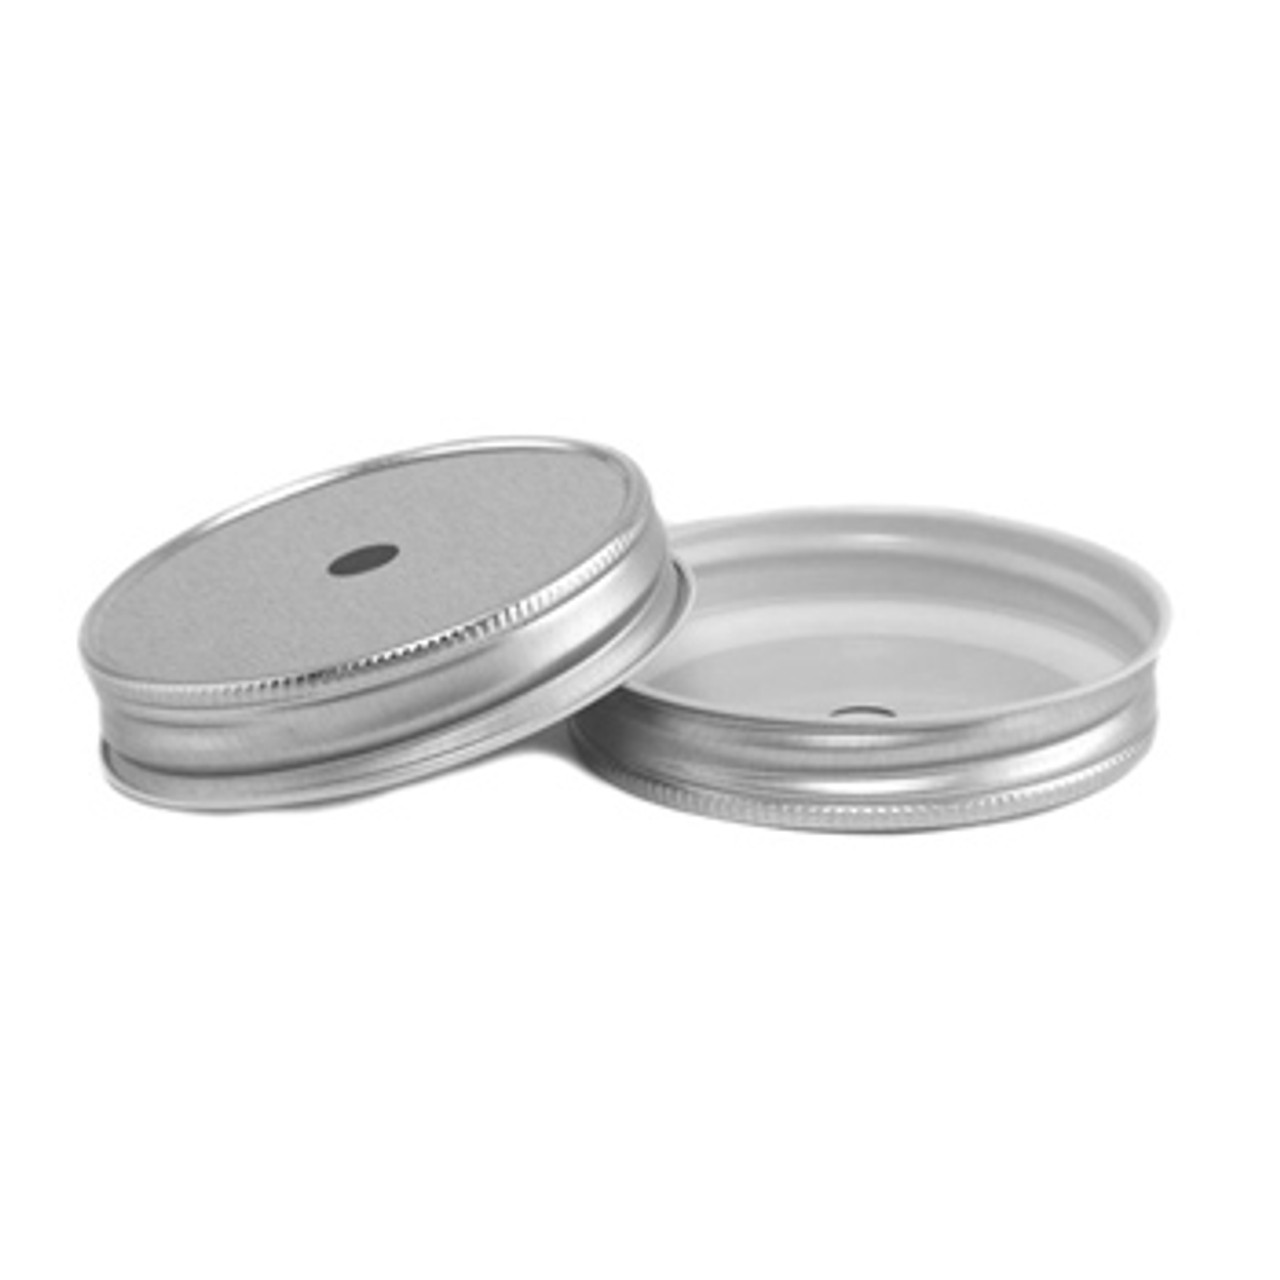 Metal Mason Jar Lid with Straw Hole - Regular